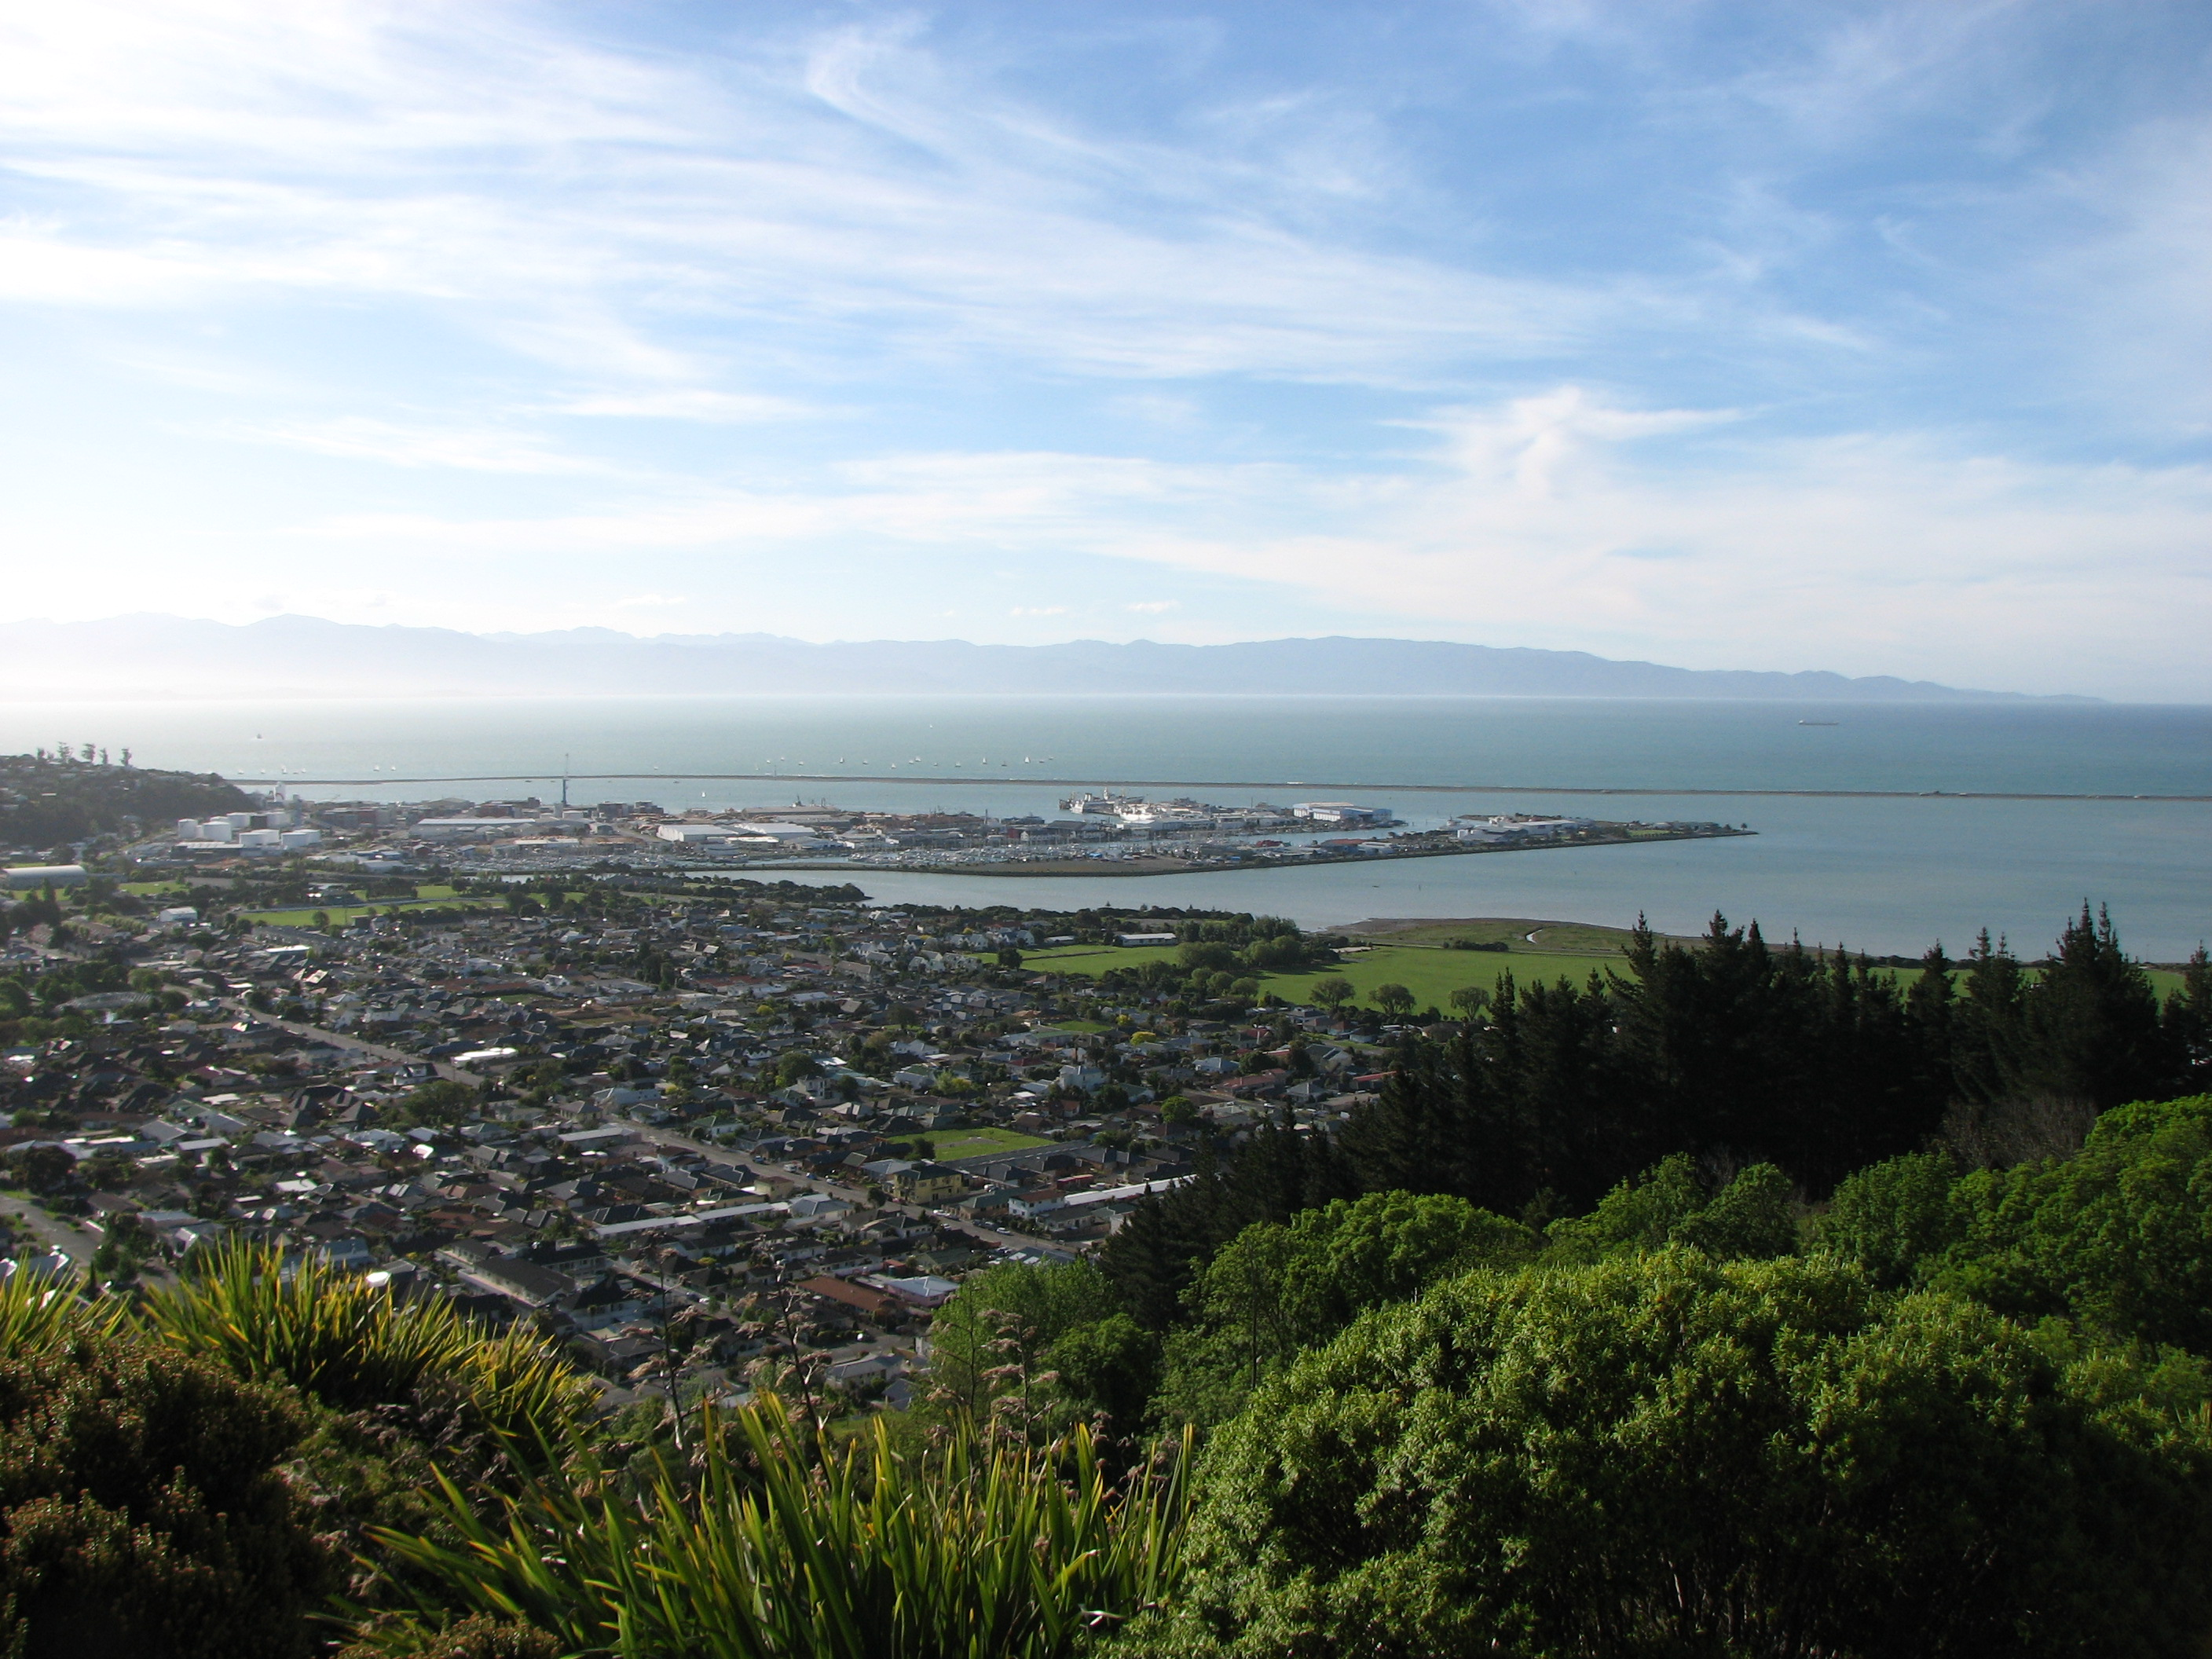 https://upload.wikimedia.org/wikipedia/commons/0/08/Nelson_New_Zealand.jpg